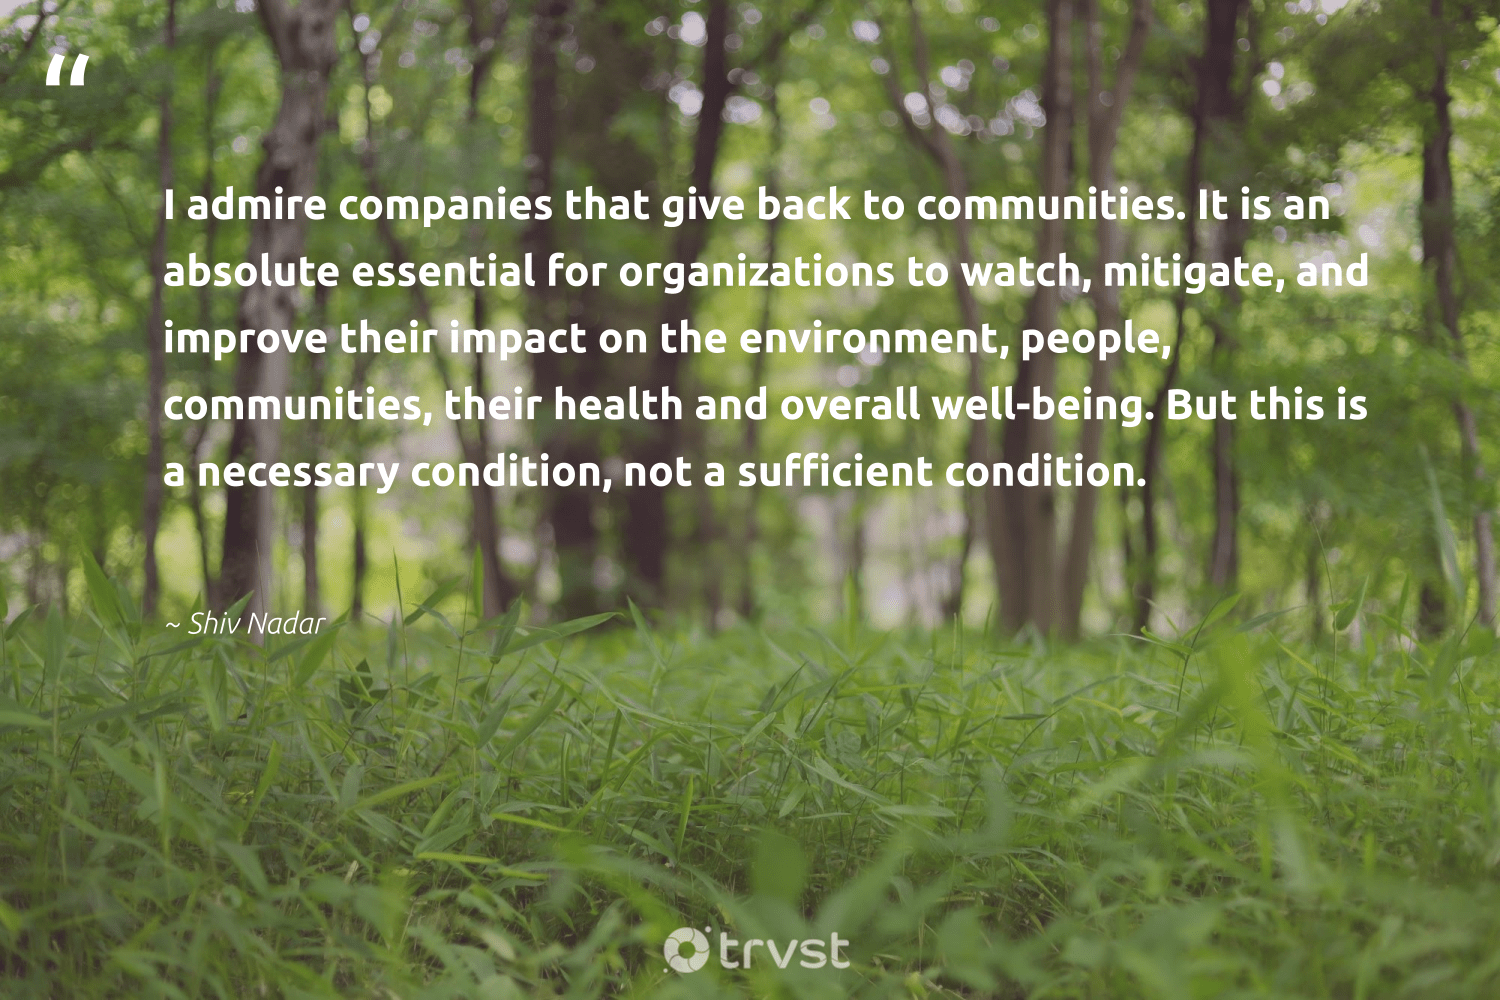 """""""I admire companies that give back to communities. It is an absolute essential for organizations to watch, mitigate, and improve their impact on the environment, people, communities, their health and overall well-being. But this is a necessary condition, not a sufficient condition.""""  - Shiv Nadar #trvst #quotes #impact #environment #giveback #communities #wellbeing #health #wellness #planet #ethicalbusiness #mindset"""